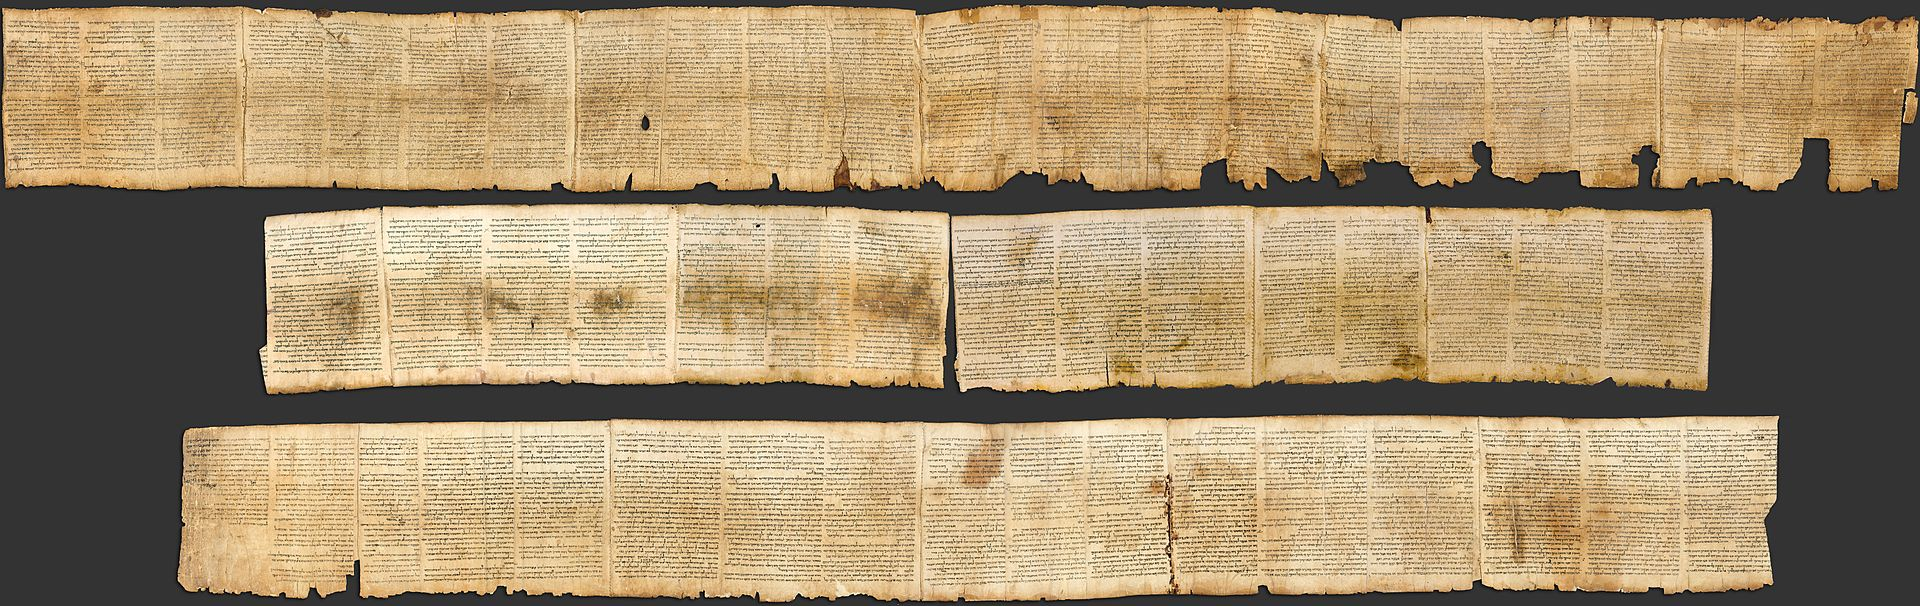 the great isaiah scroll The text of isaiah at qumran 1 number of copies scrolls from qumrân cave i: the great isaiah scroll, the order of the community, the pesher to habakkuk.